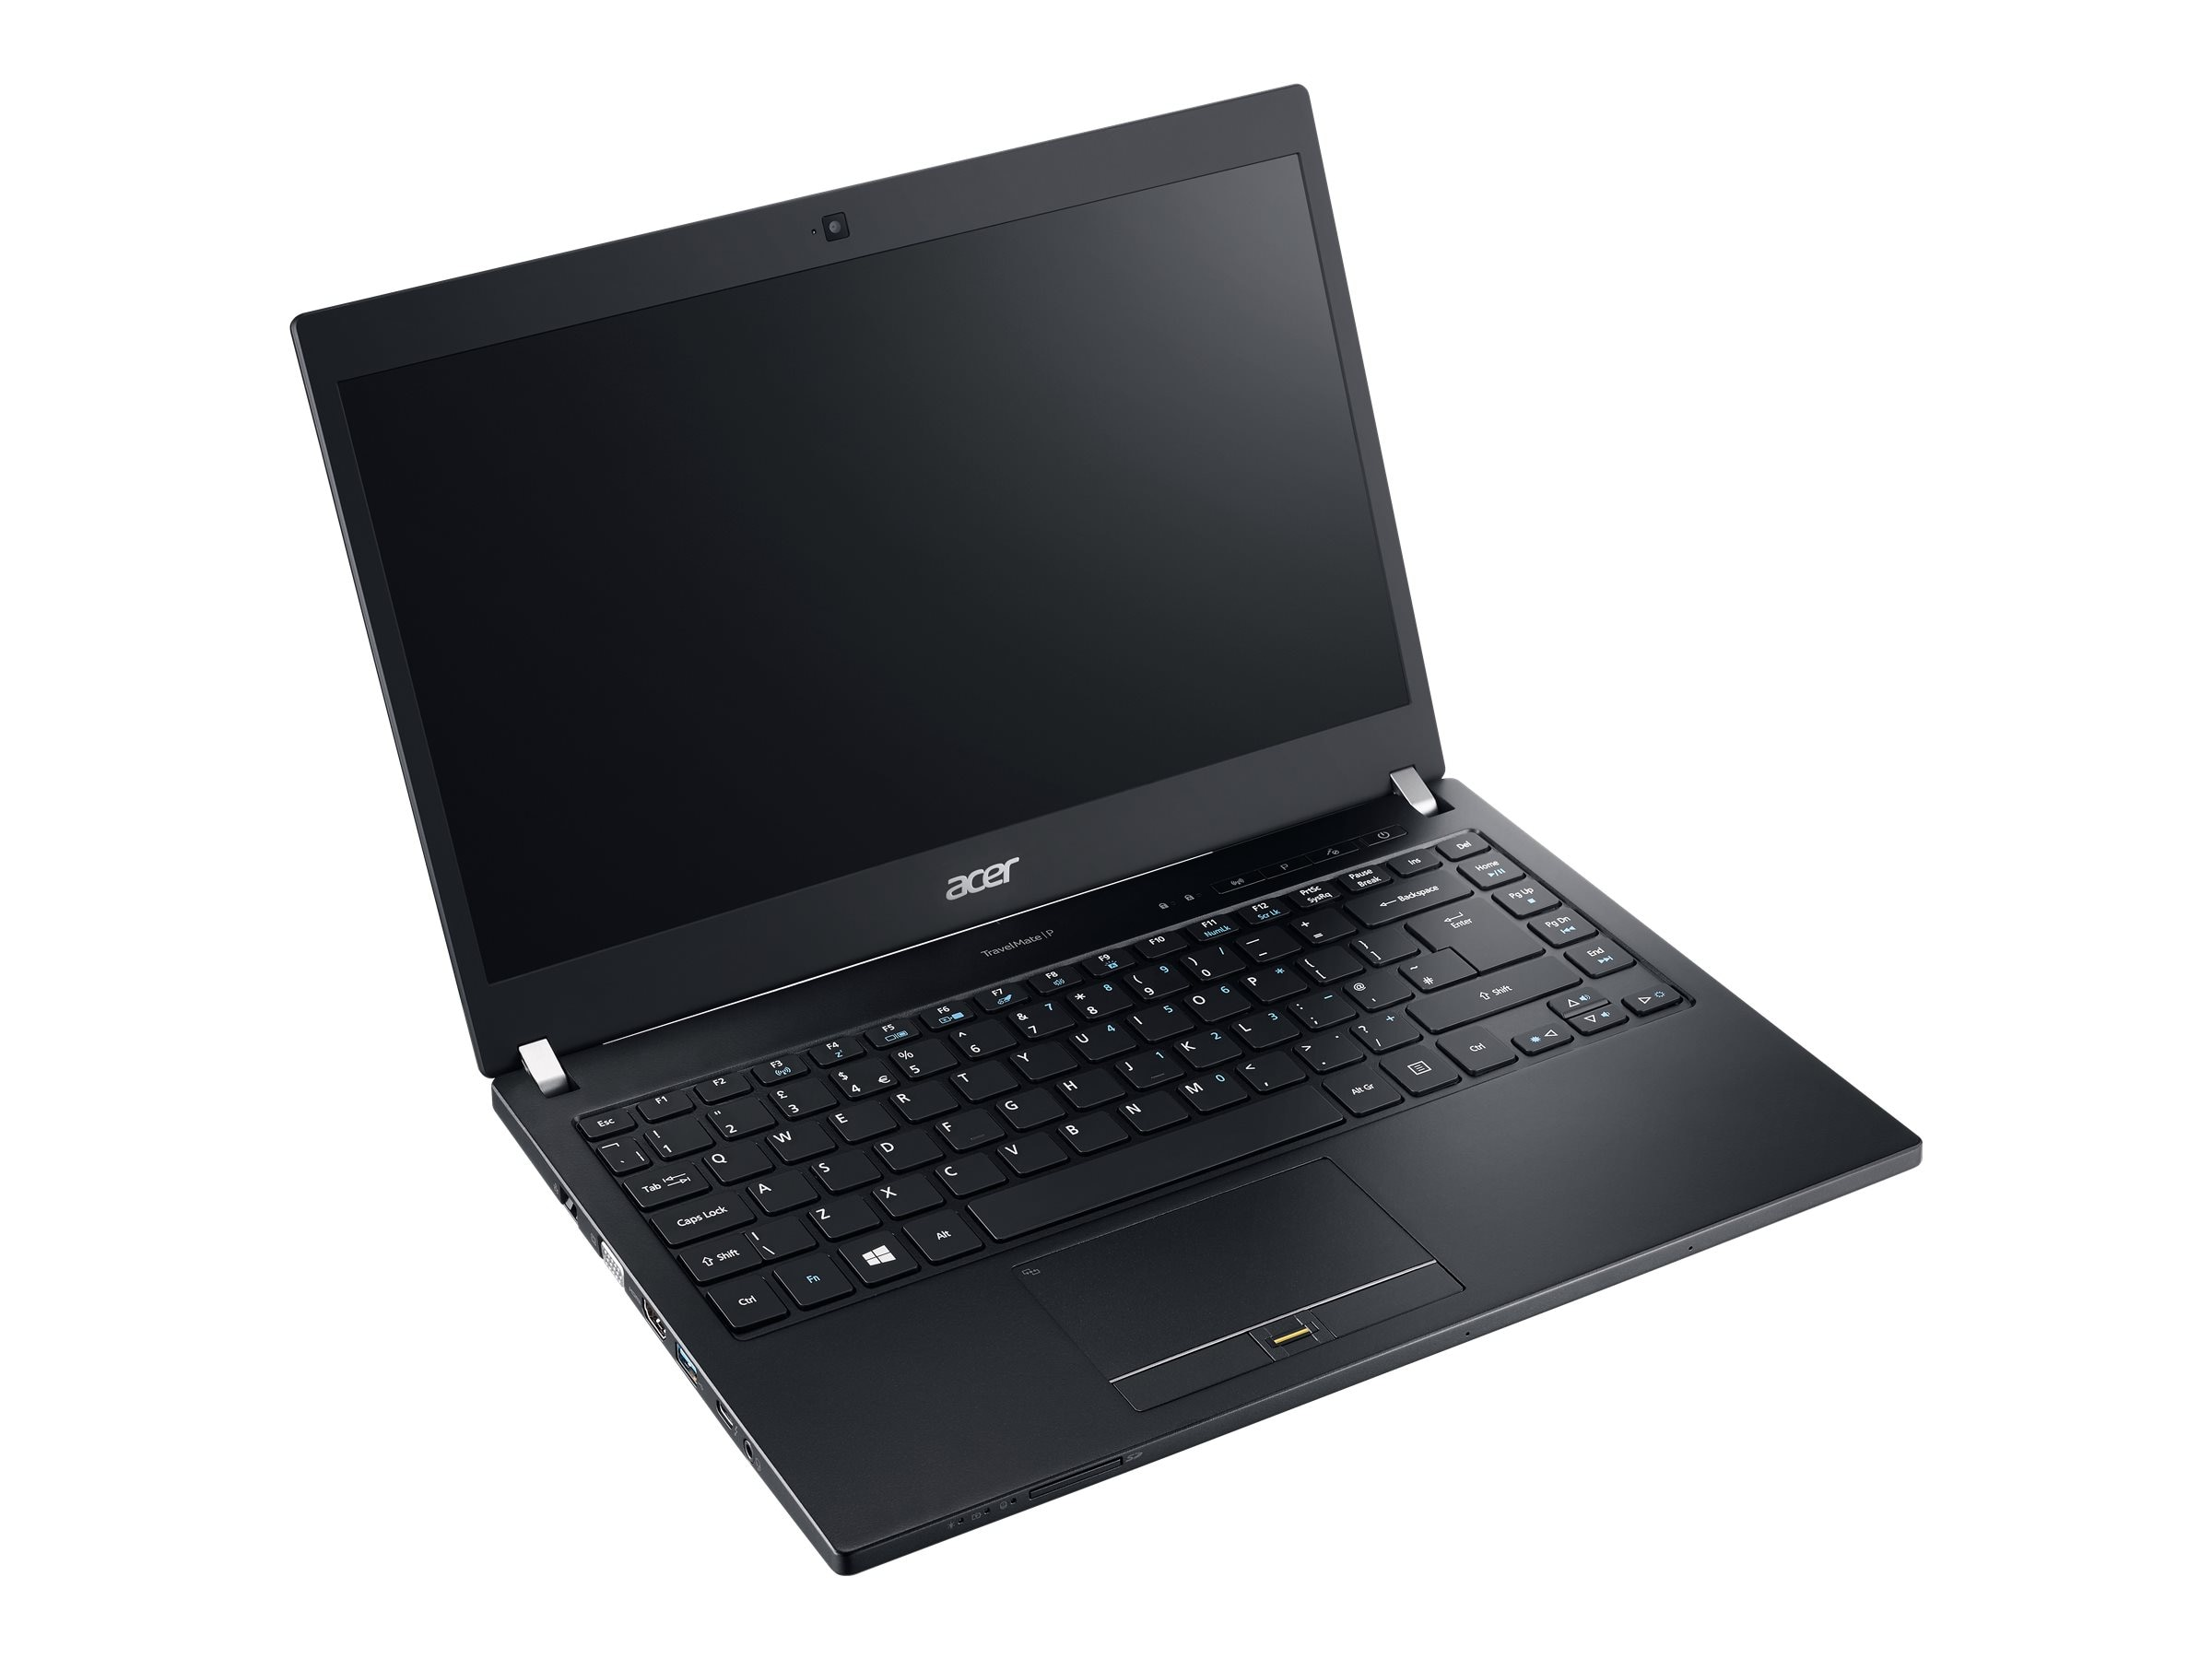 Acer Travelmate P648-MG-789T 2.5GHz Core i7 14in display, NX.VCWAA.001